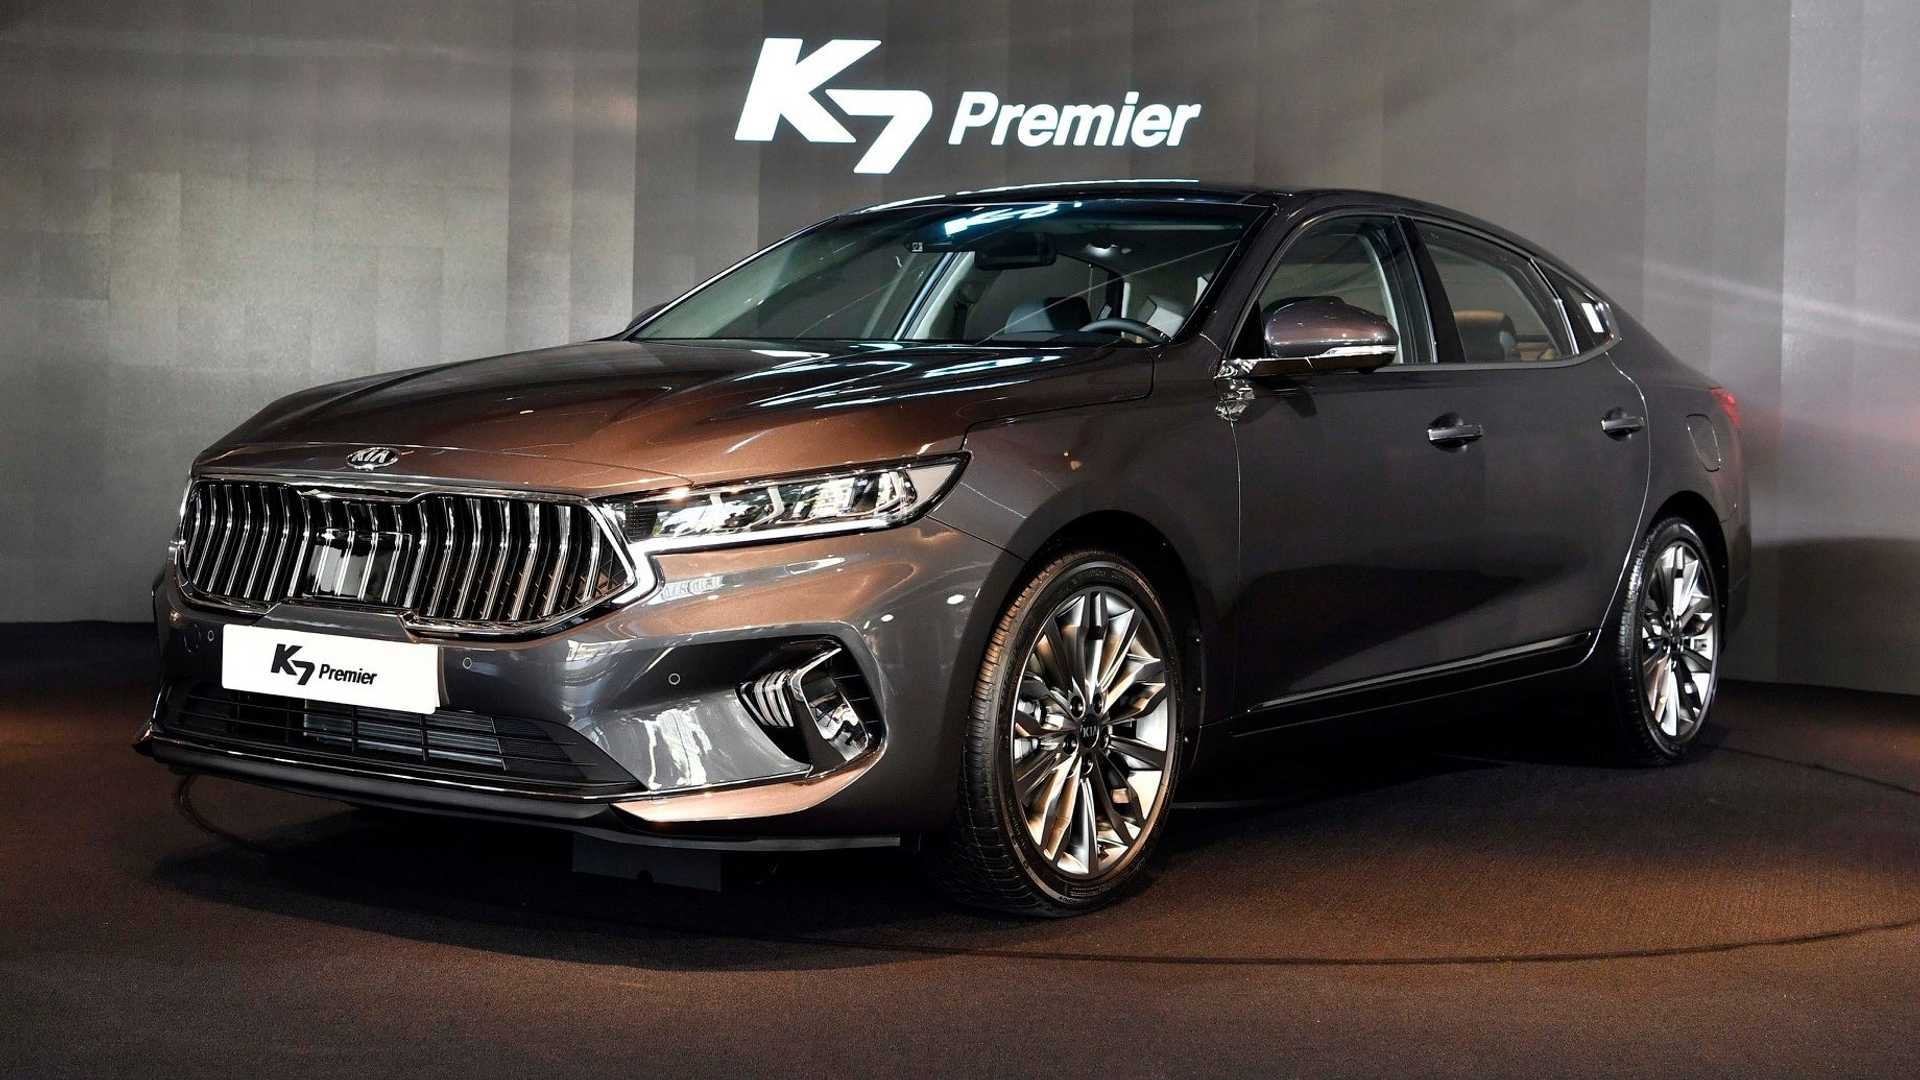 2021 Kia Cadenza Price Release Date, Color Options, Changes - Kia Cadenza V6 Transmission Options, Release Date